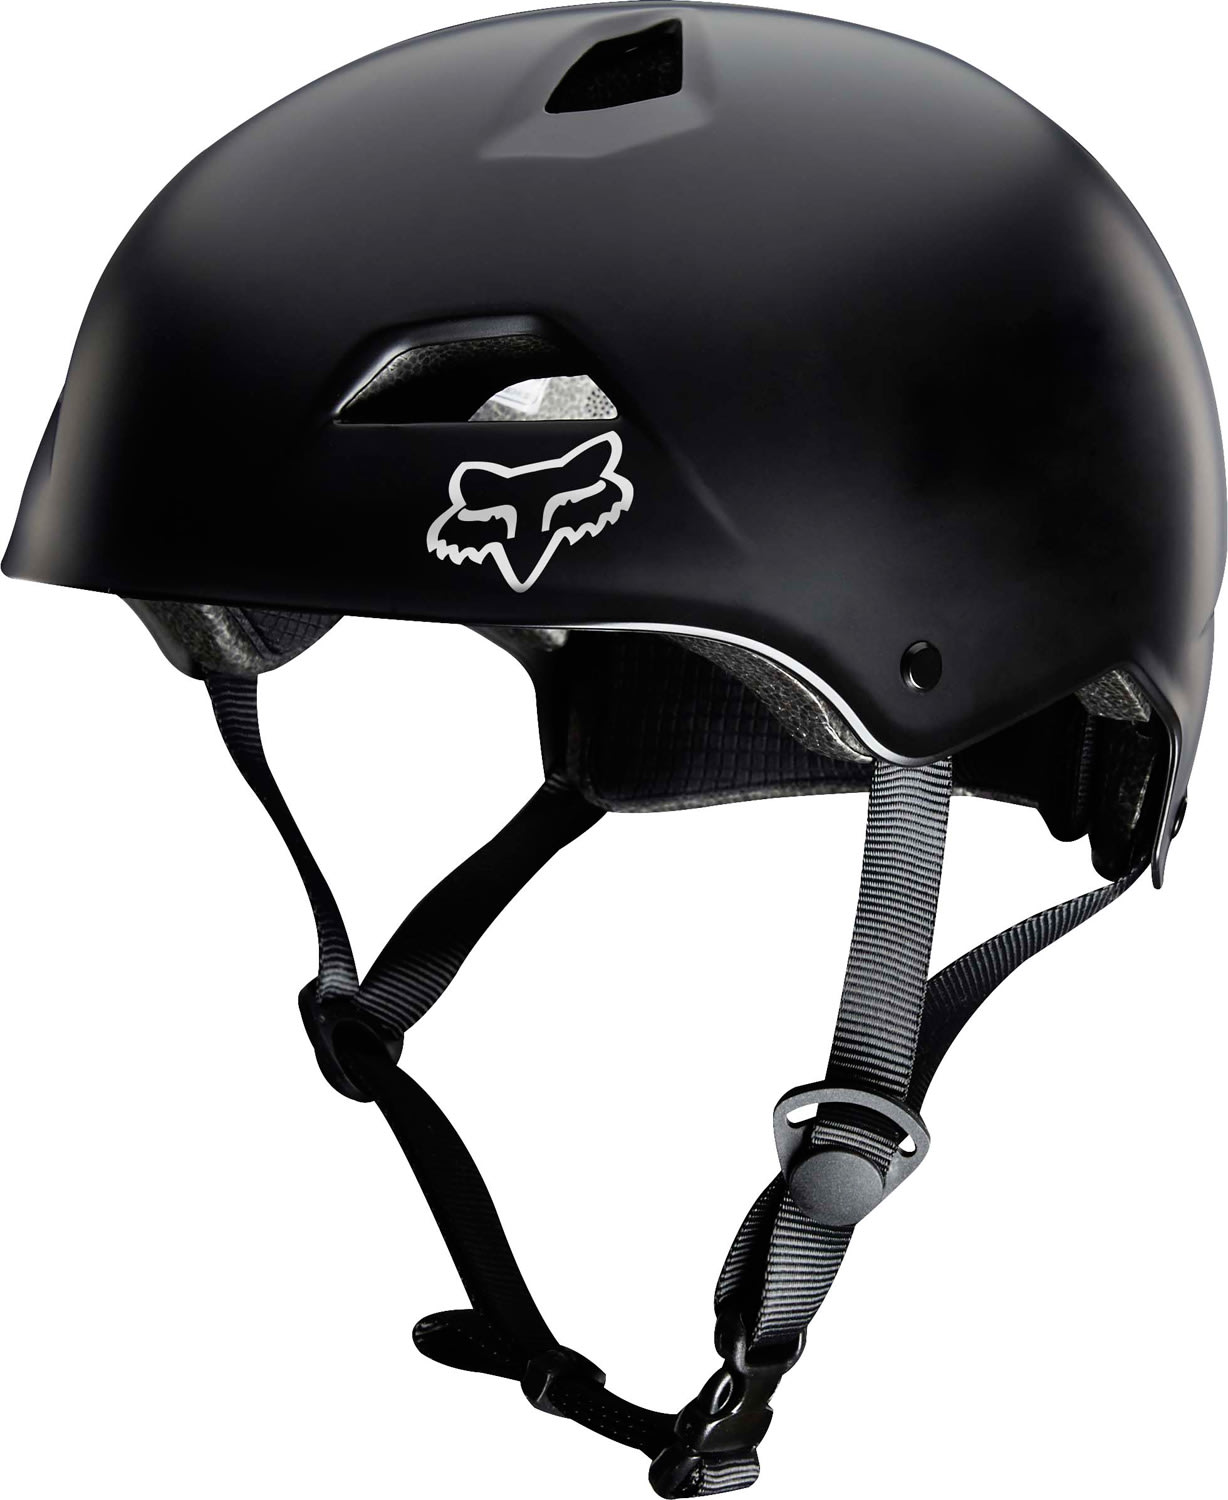 on sale fox flight sport bike helmet 2018. Black Bedroom Furniture Sets. Home Design Ideas